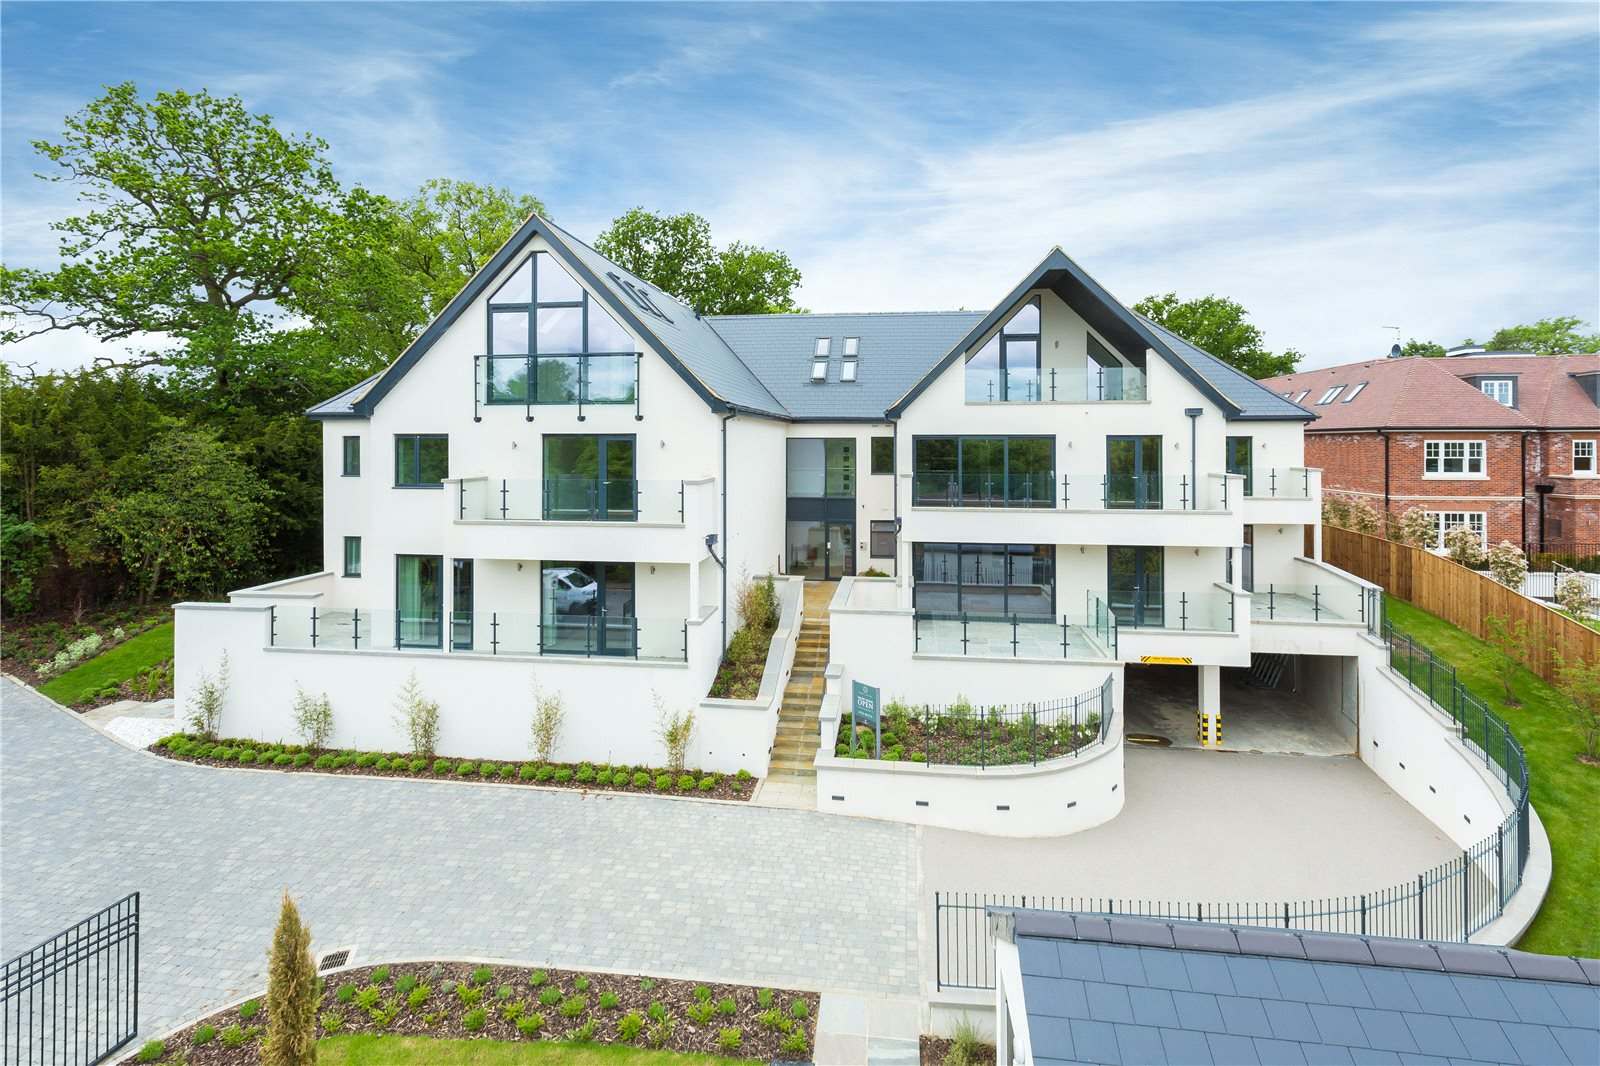 公寓 为 销售 在 South Park Crescent, Gerrards Cross, Buckinghamshire, SL9 Gerrards Cross, 英格兰